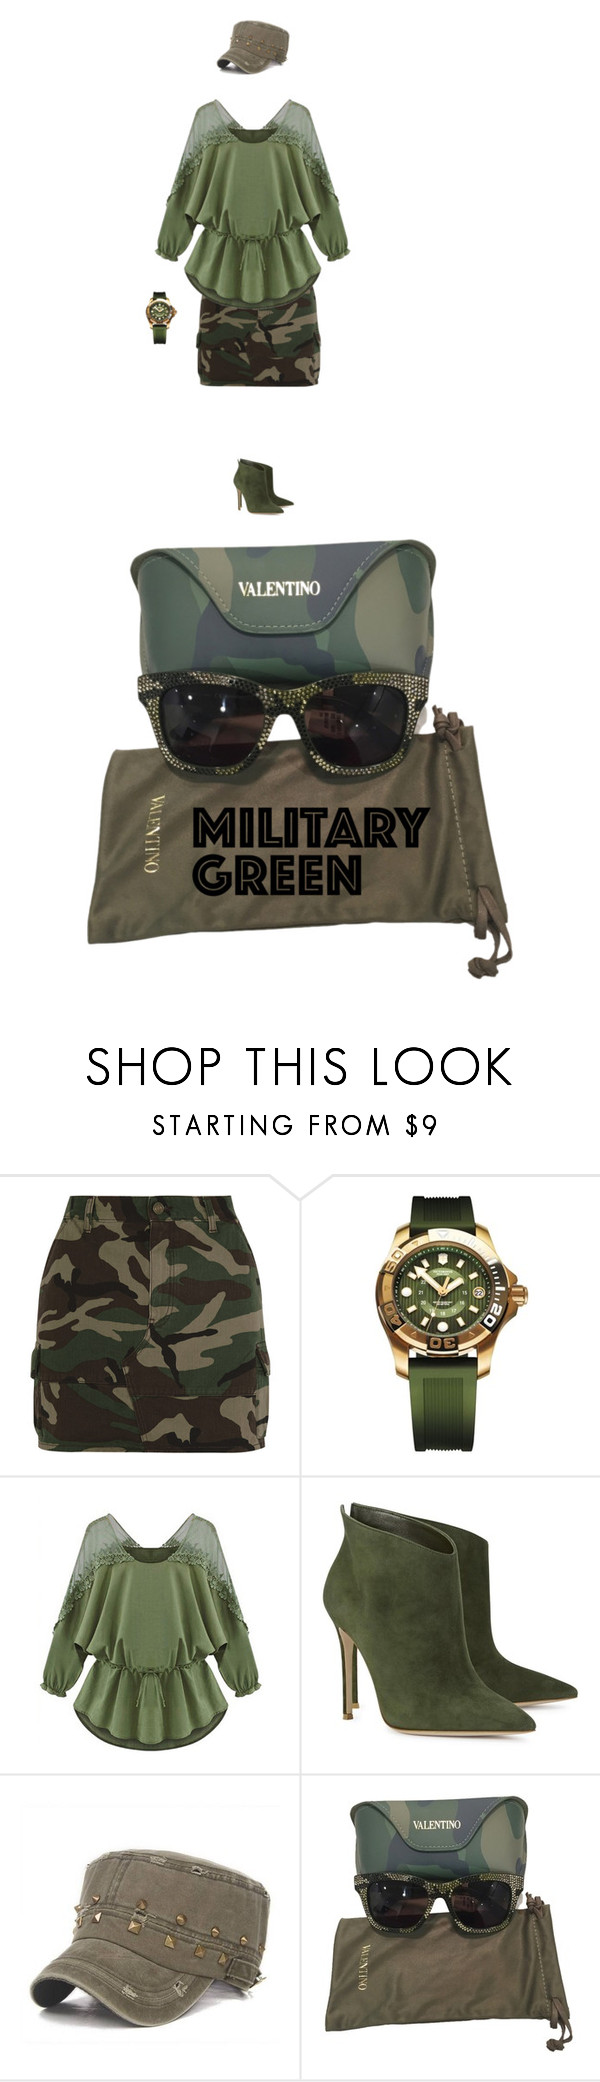 """""""Army Green"""" by ilona-828 ❤ liked on Polyvore featuring Yves Saint Laurent, Victorinox Swiss Army, WithChic, Gianvito Rossi, Valentino and Gogreen"""